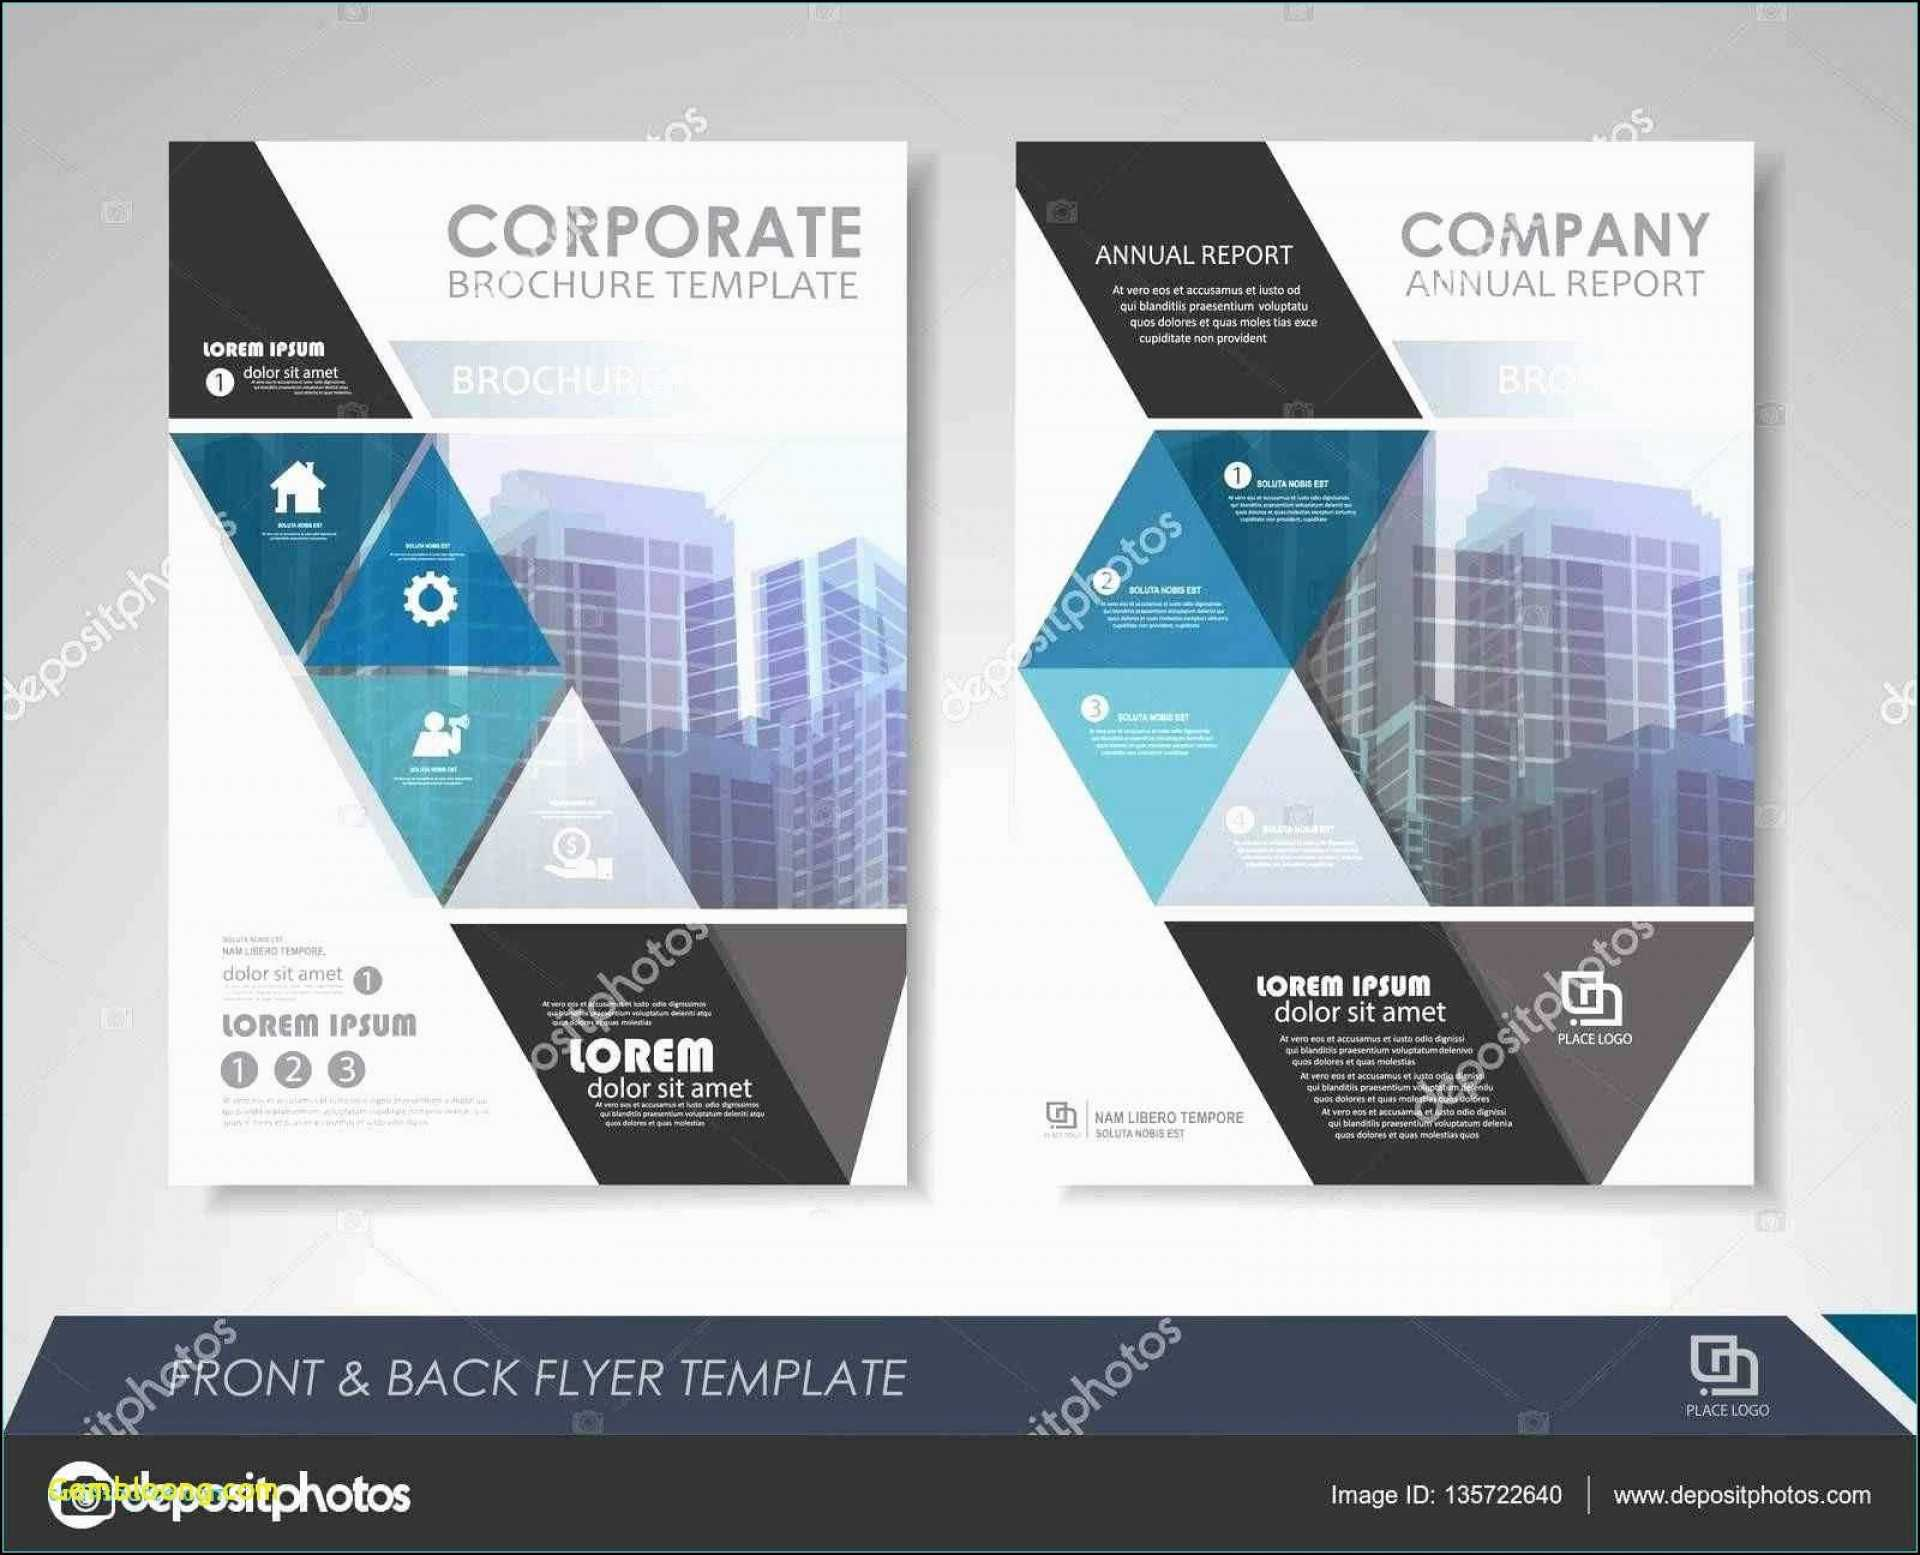 026 Template Ideas Free Download Brochure Templates Intended For Free Illustrator Brochure Templates Download